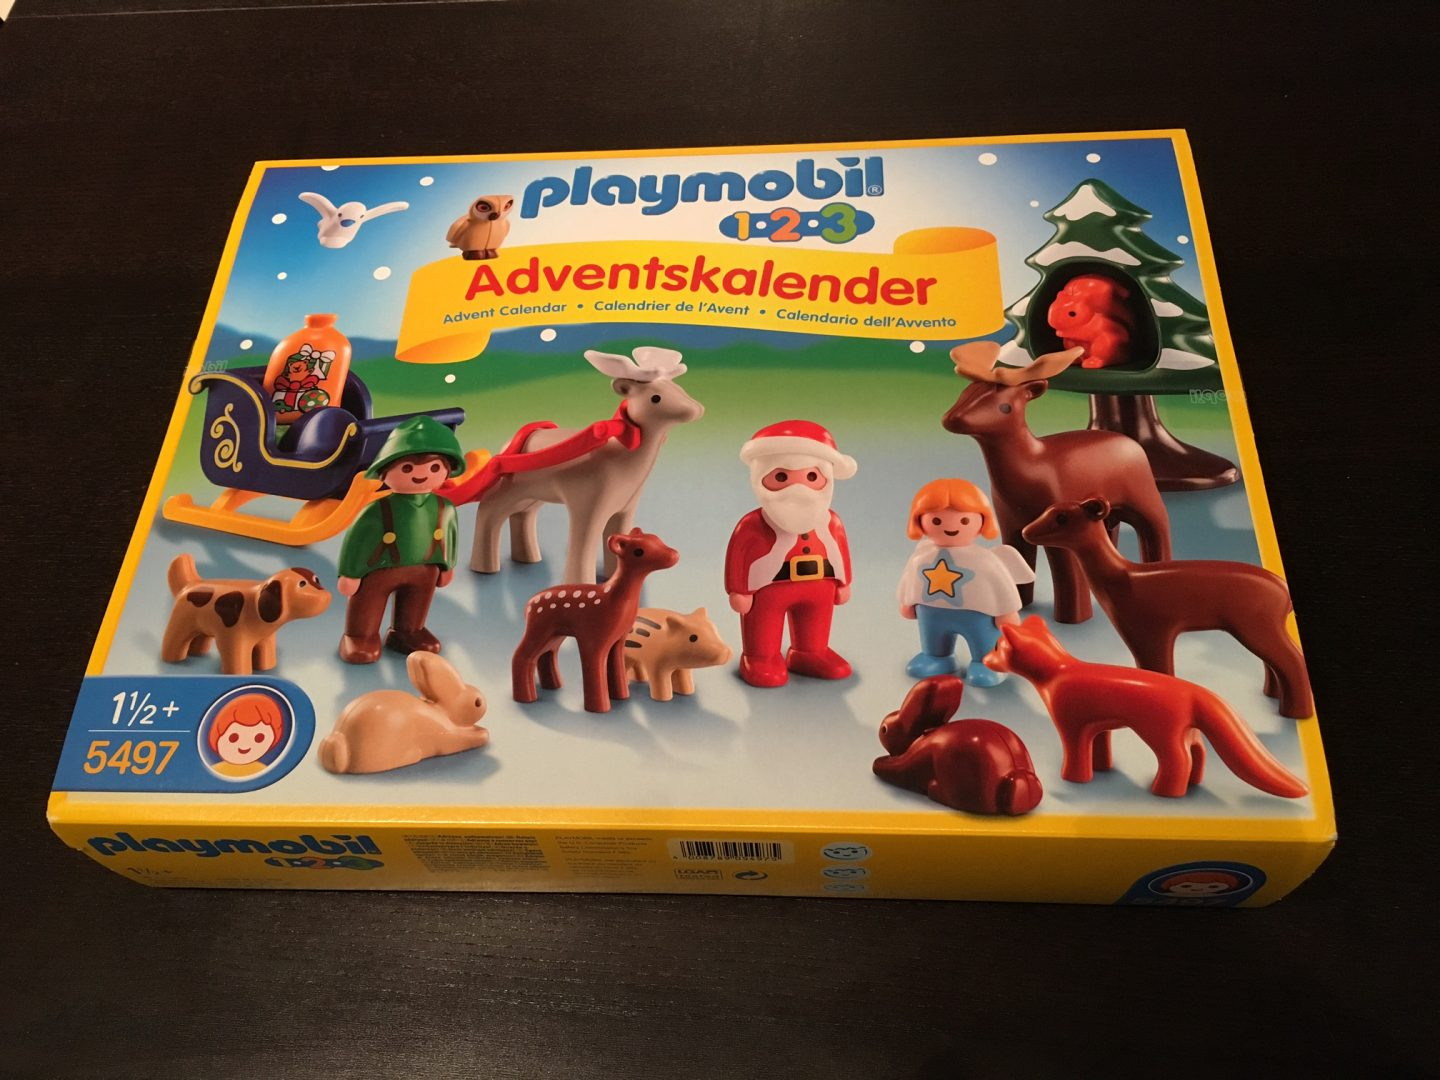 IMG 2155 - Advent met peuters & playmobil